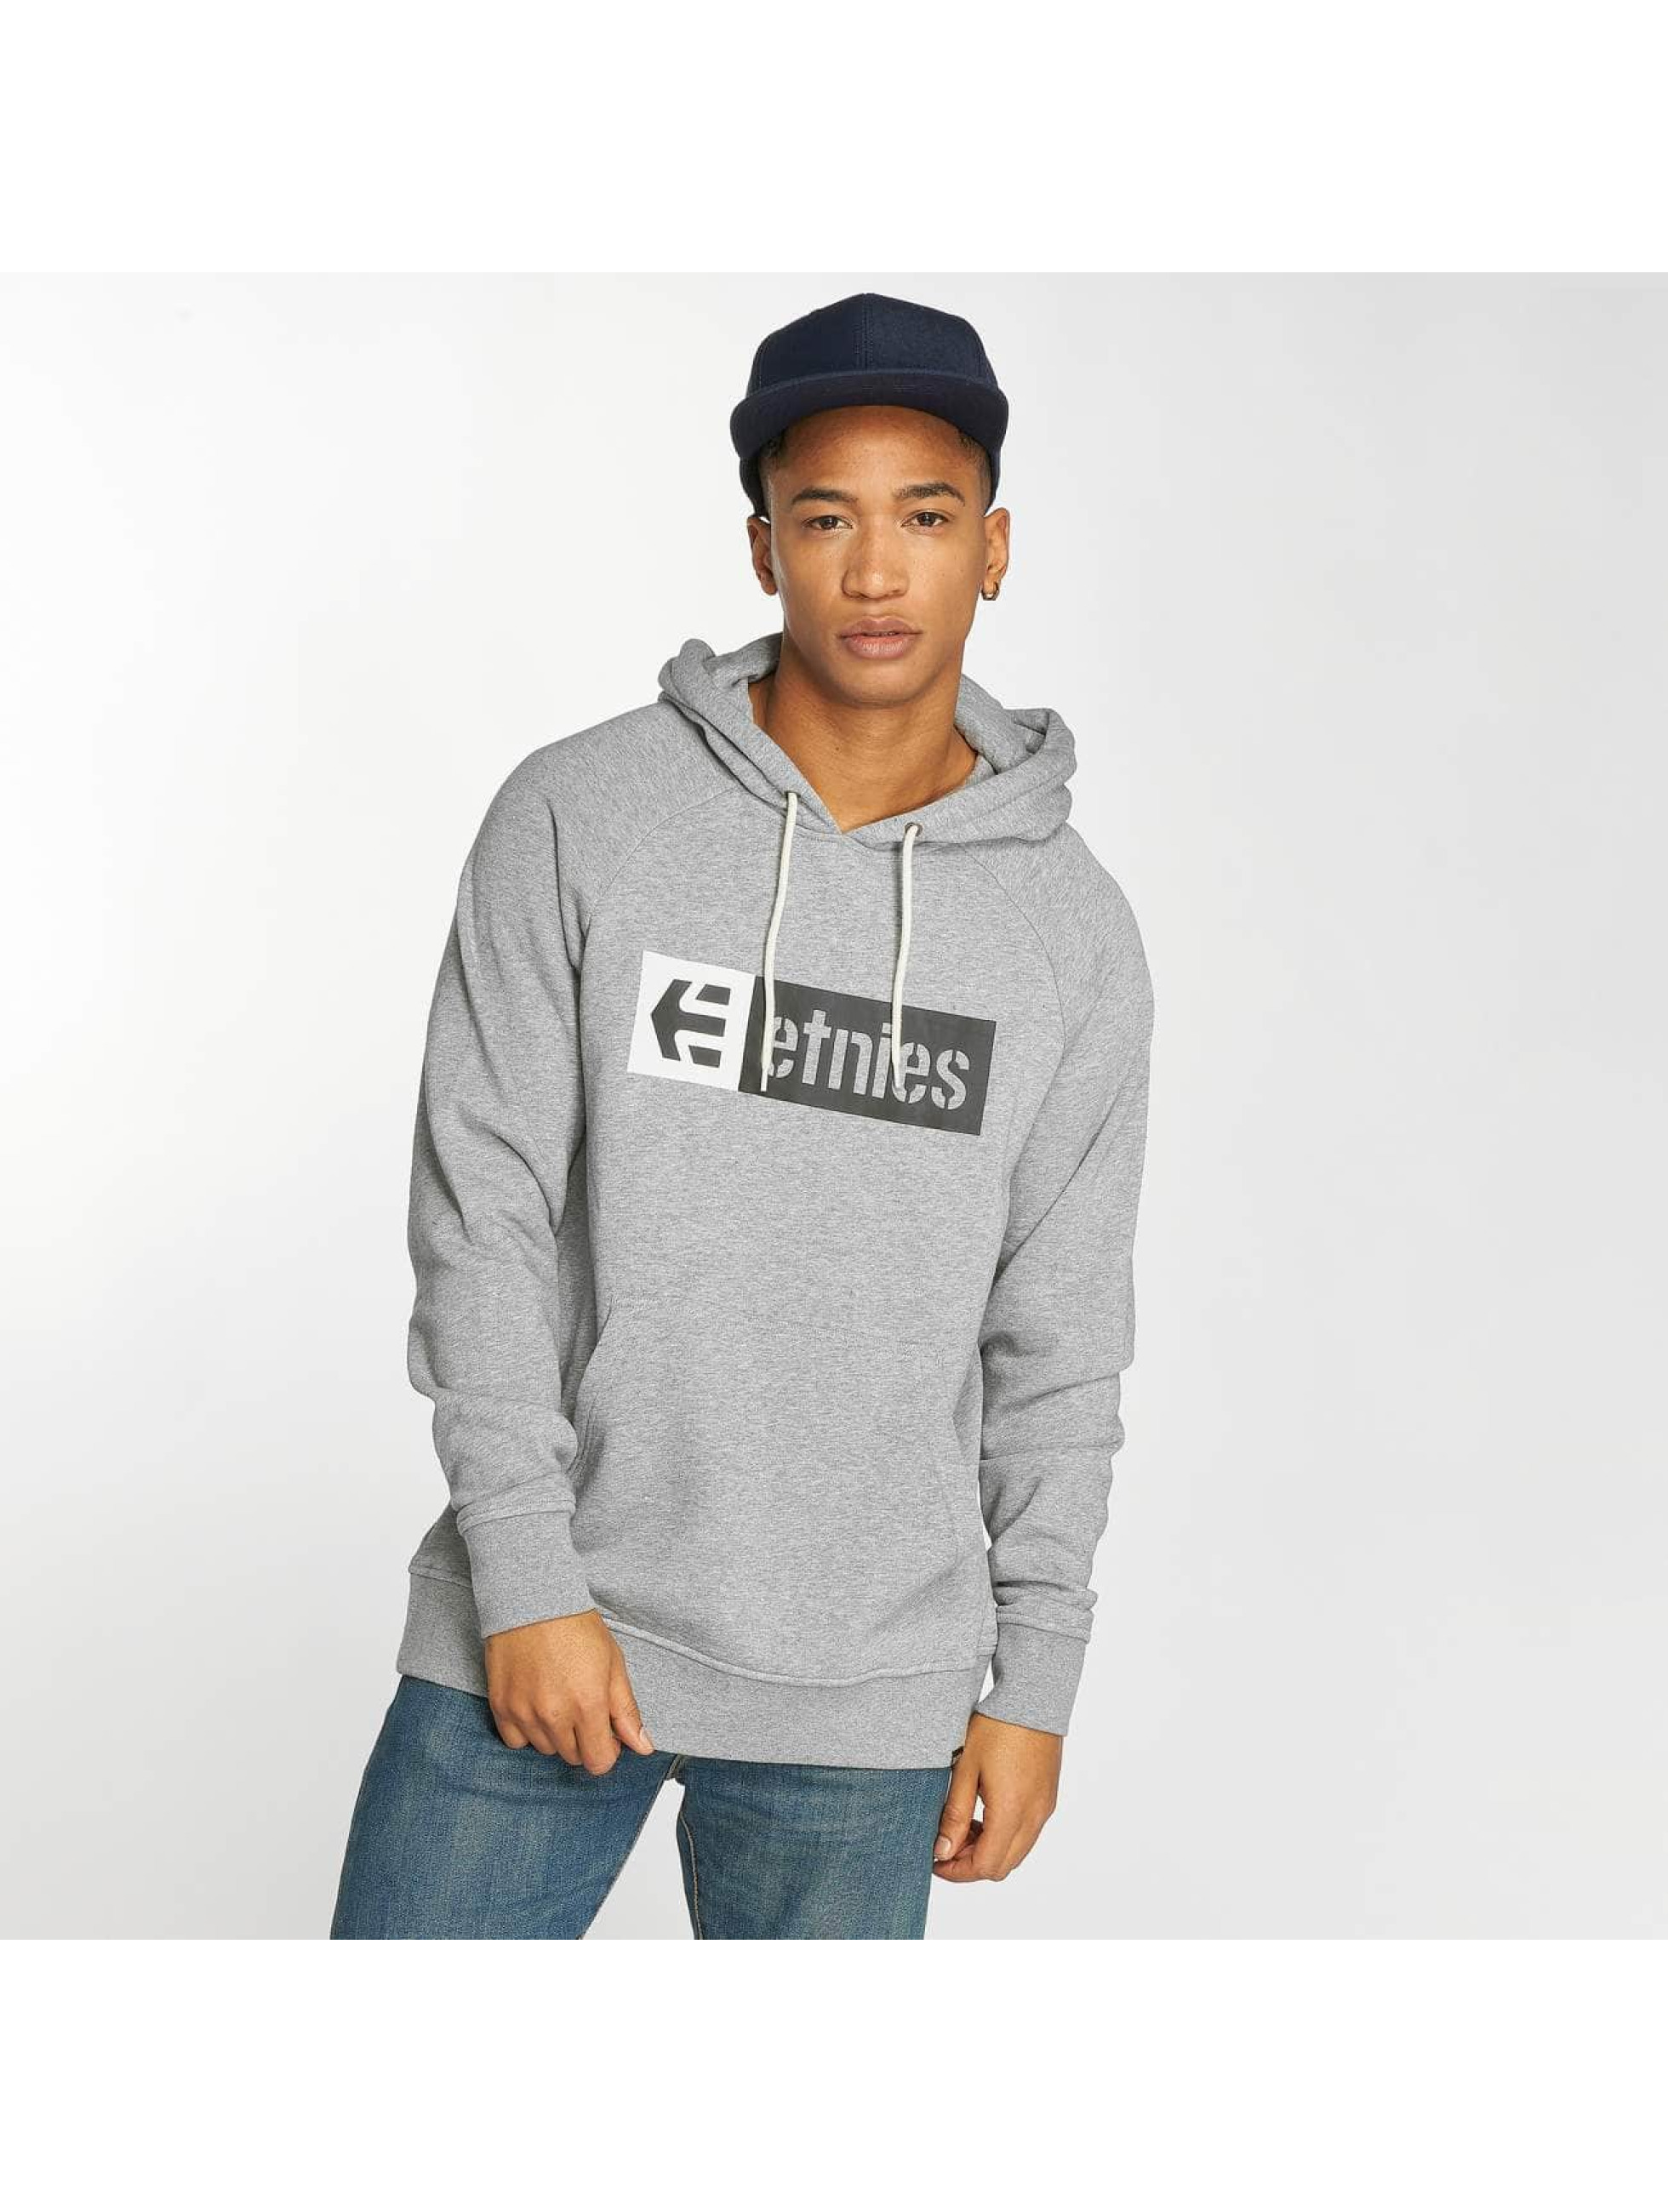 Etnies Sudadera New Box gris